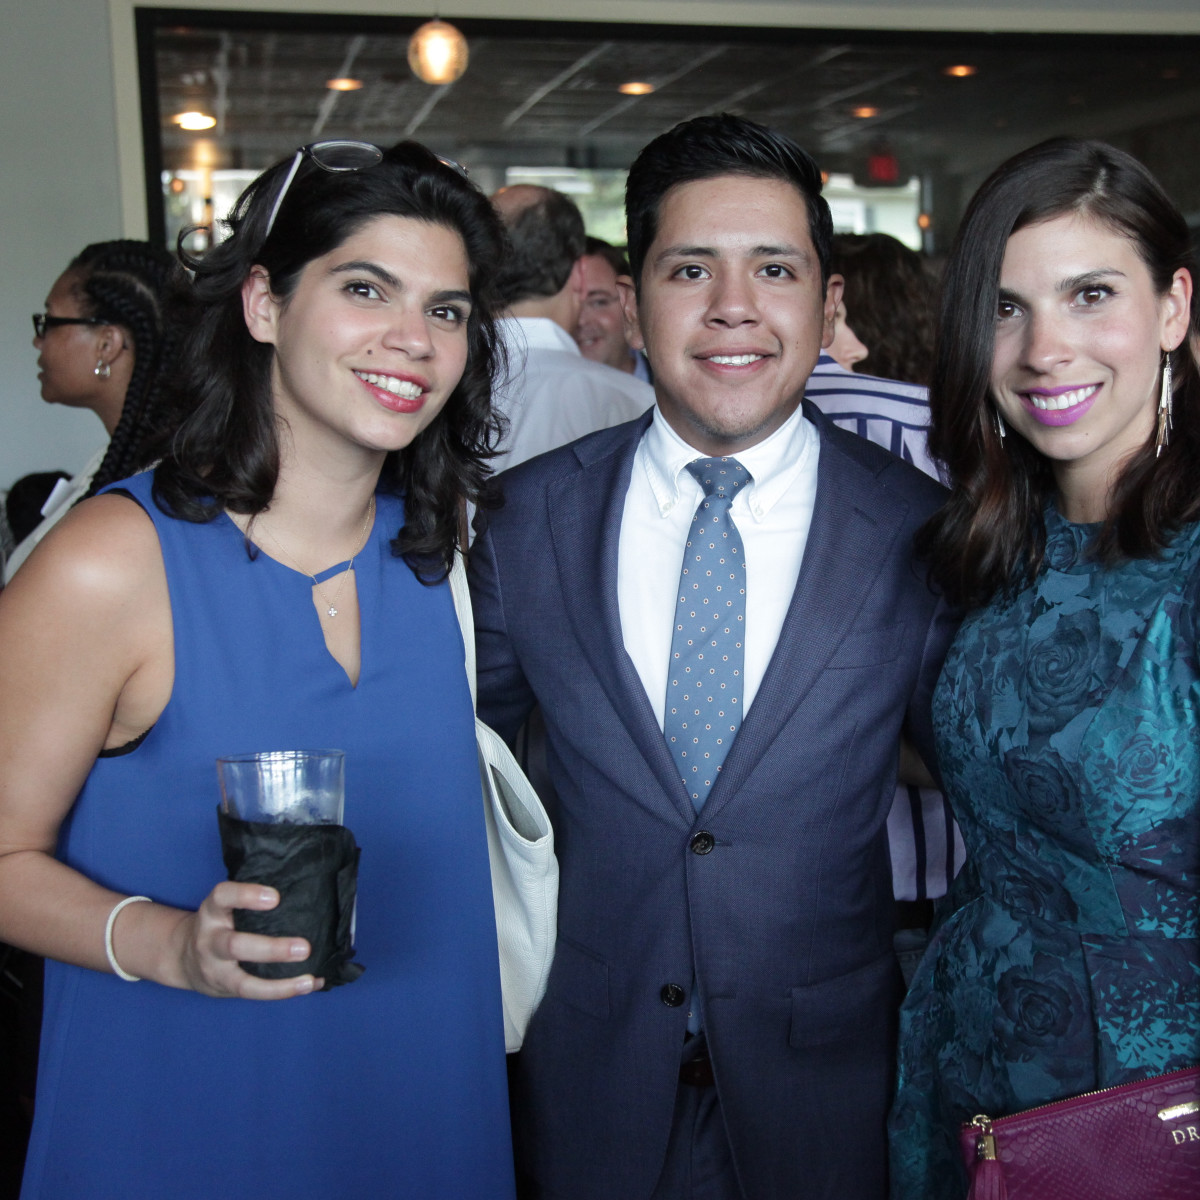 Chris Brown 40th Birthday Elena Giralt, Rolando Paz and Andrea Gallagher